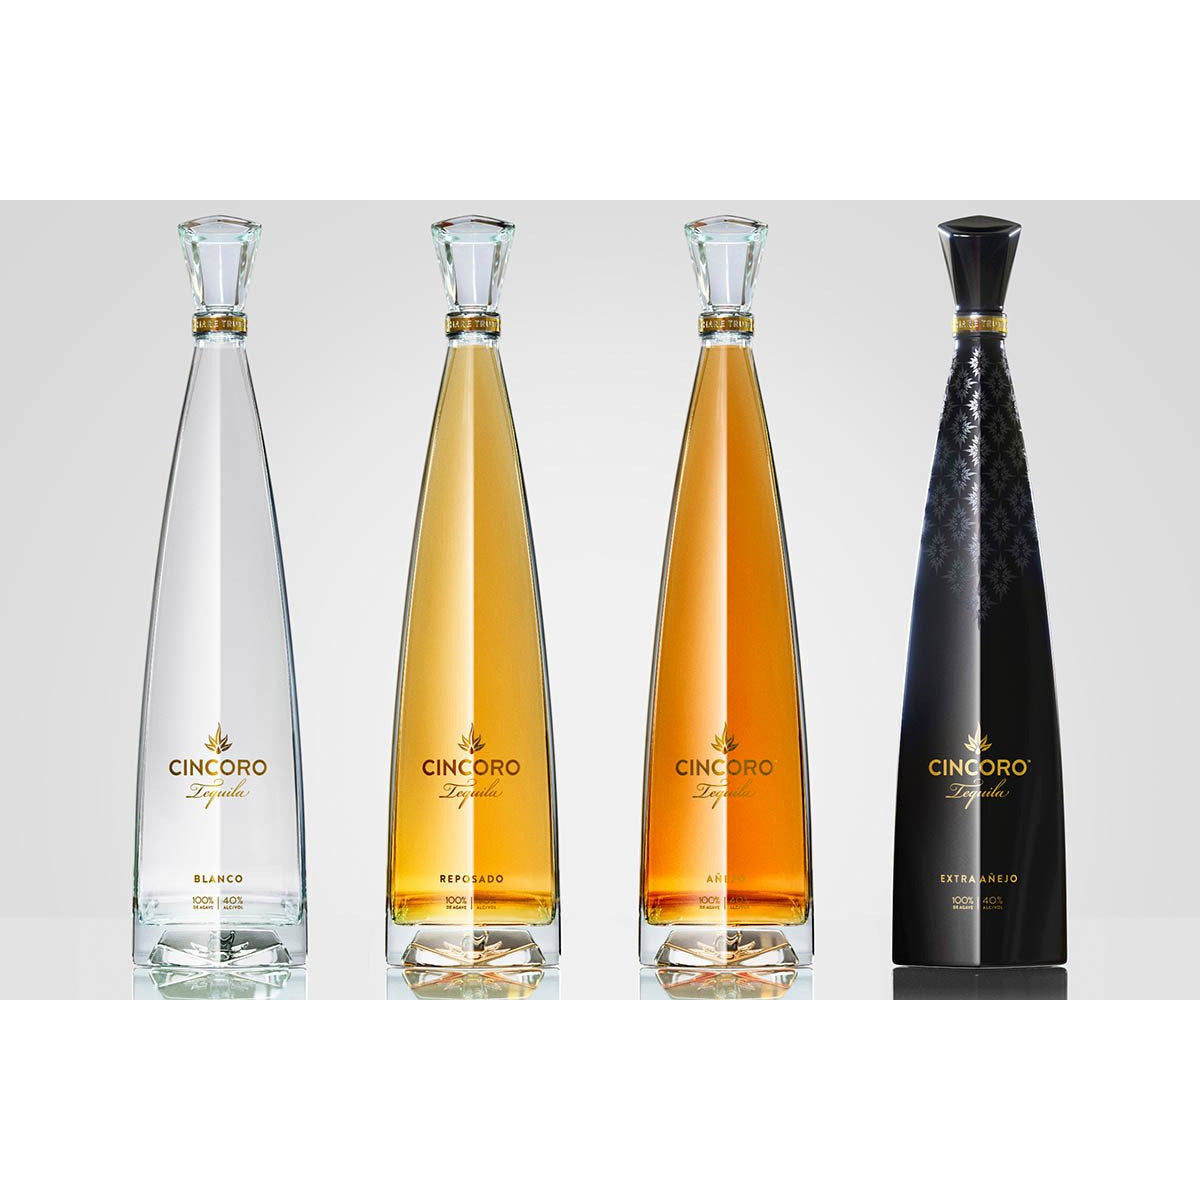 Cincoro Full Set Blanco, Reposado, Anejo, Extra Anejo (Michael Jordan) (750mL)